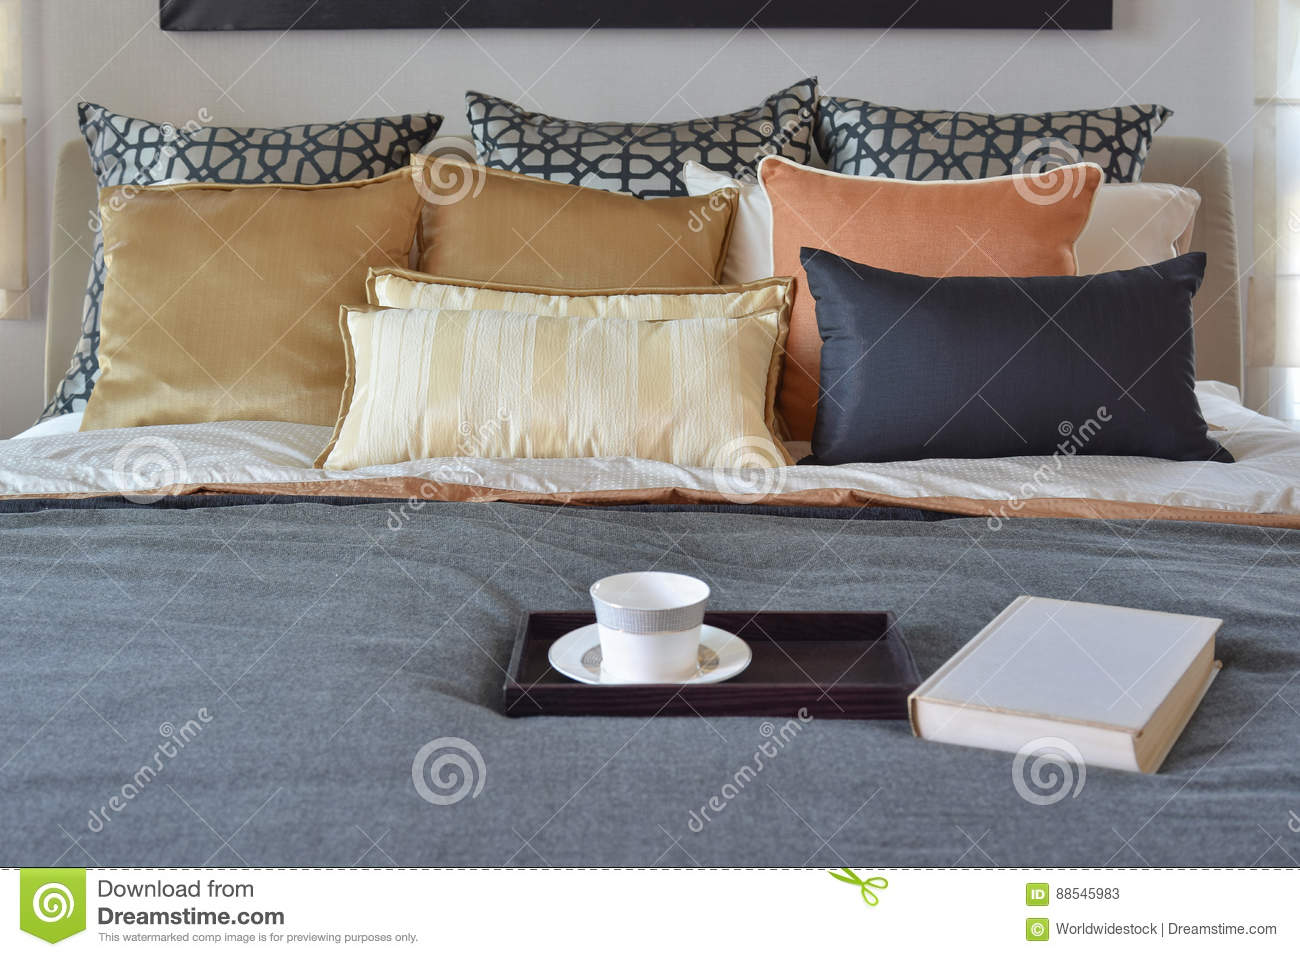 Modern Bedroom Interior With Teacup On Decorative Wooden